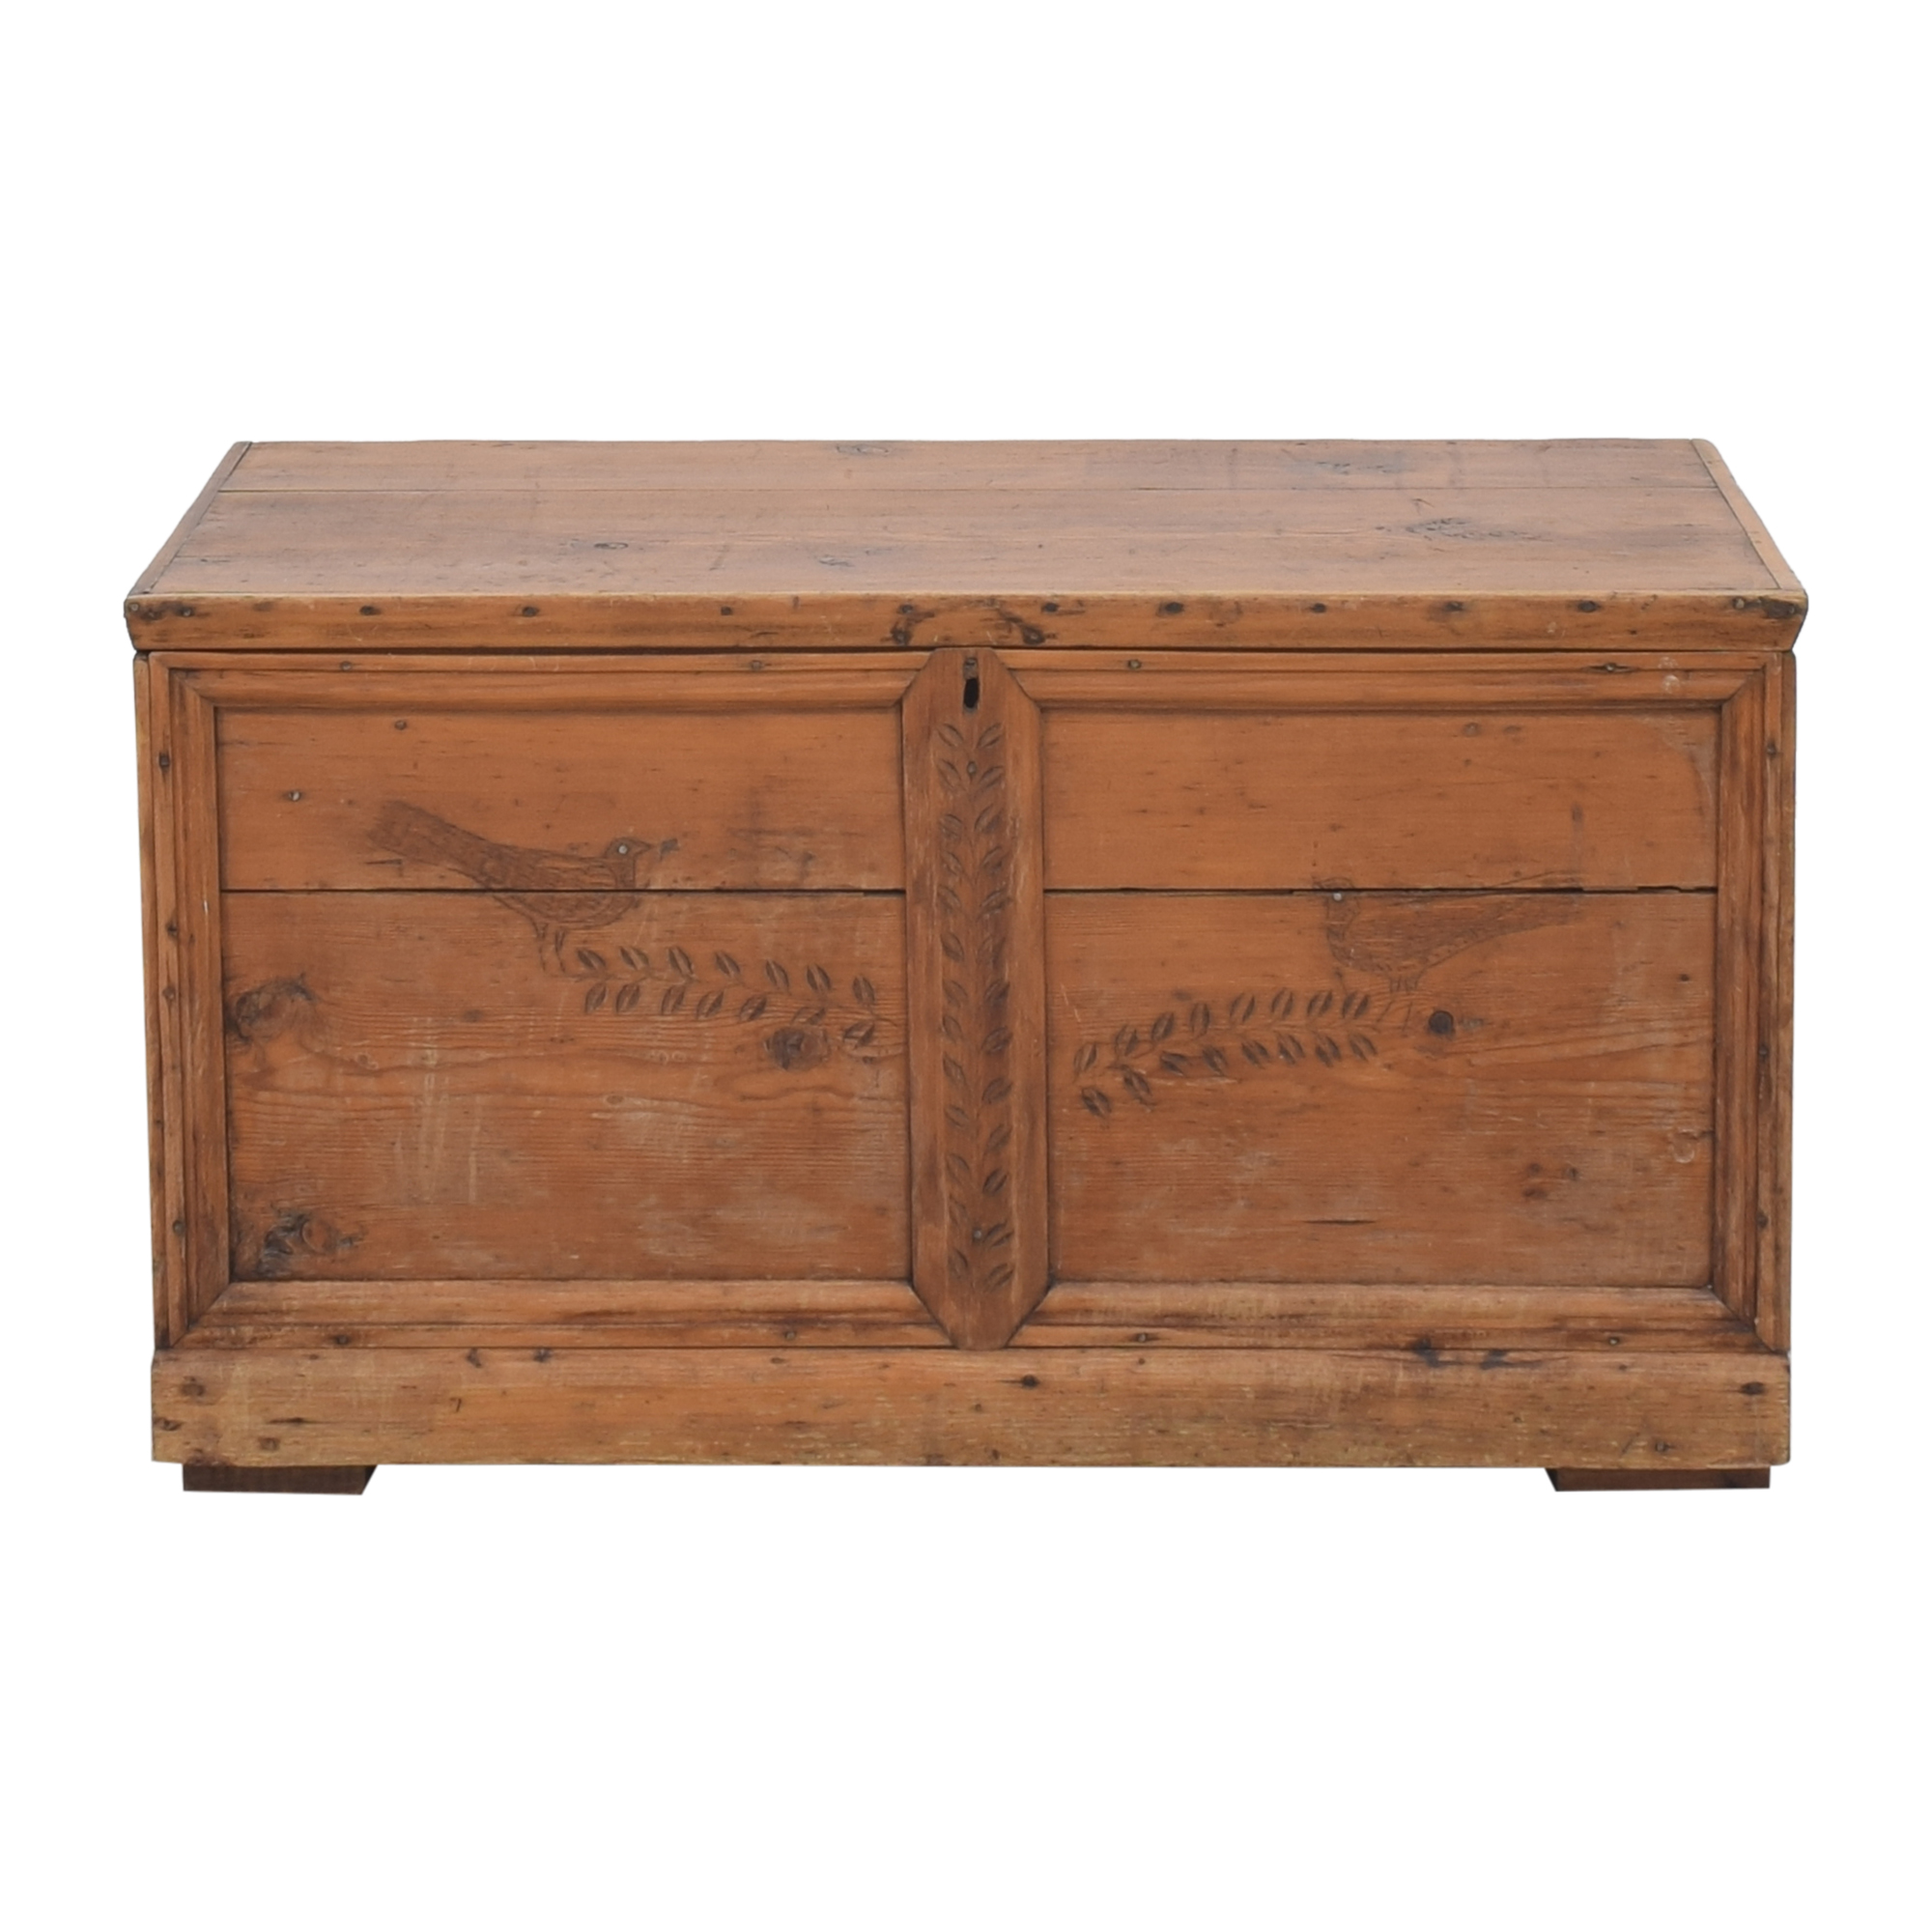 Antique Storage Trunk pa